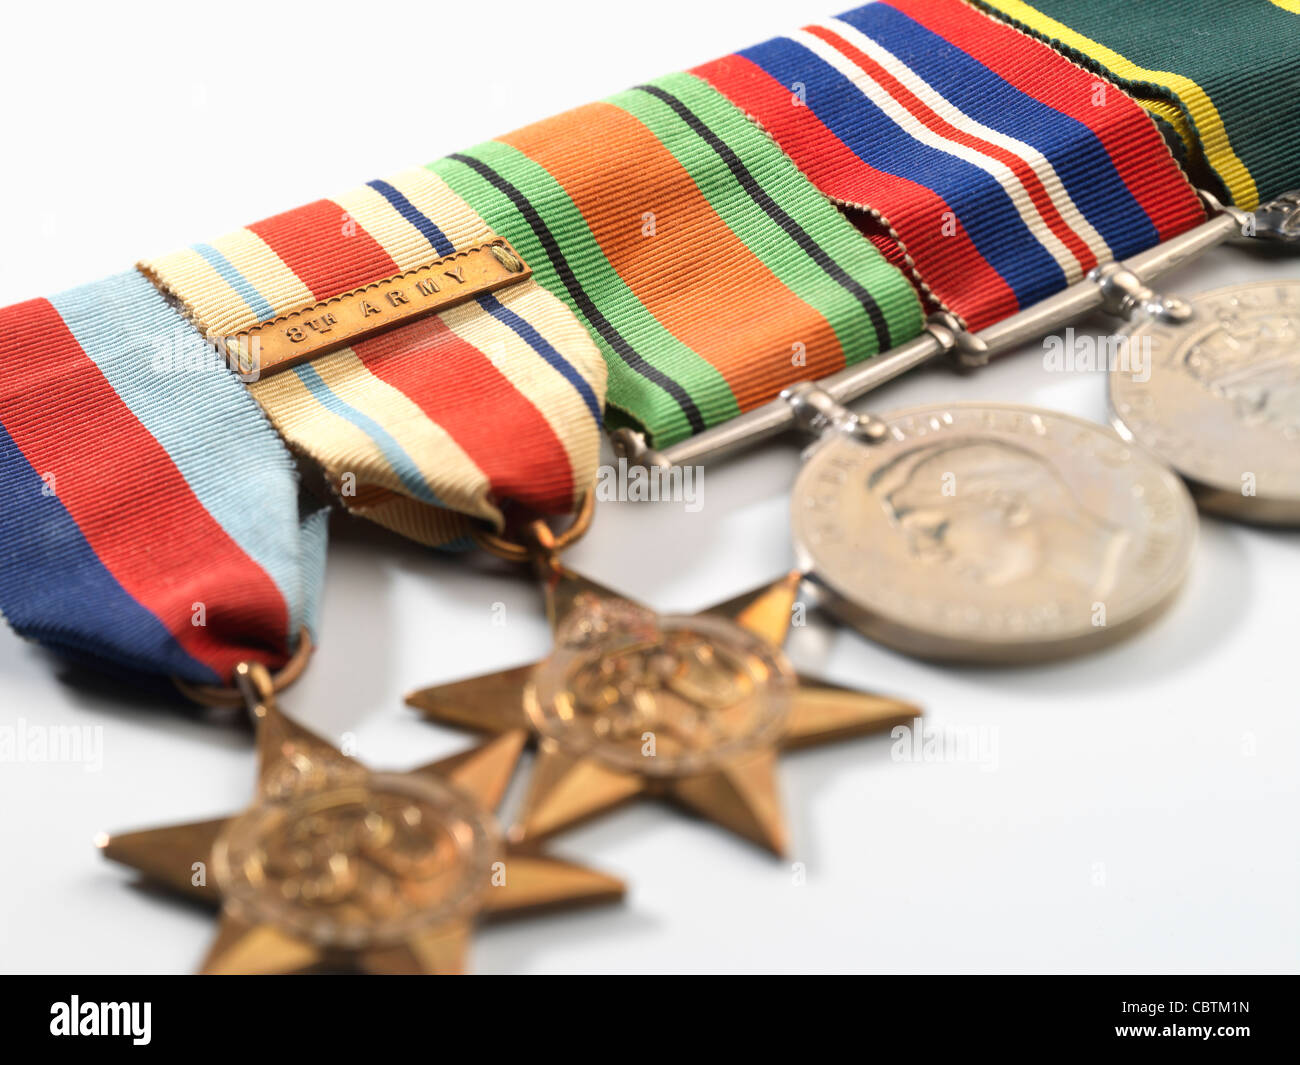 Medals awarded during WW2, including the 8th Army Africa Star, The Defence Medal, and The Territorial Army Medal. - Stock Image